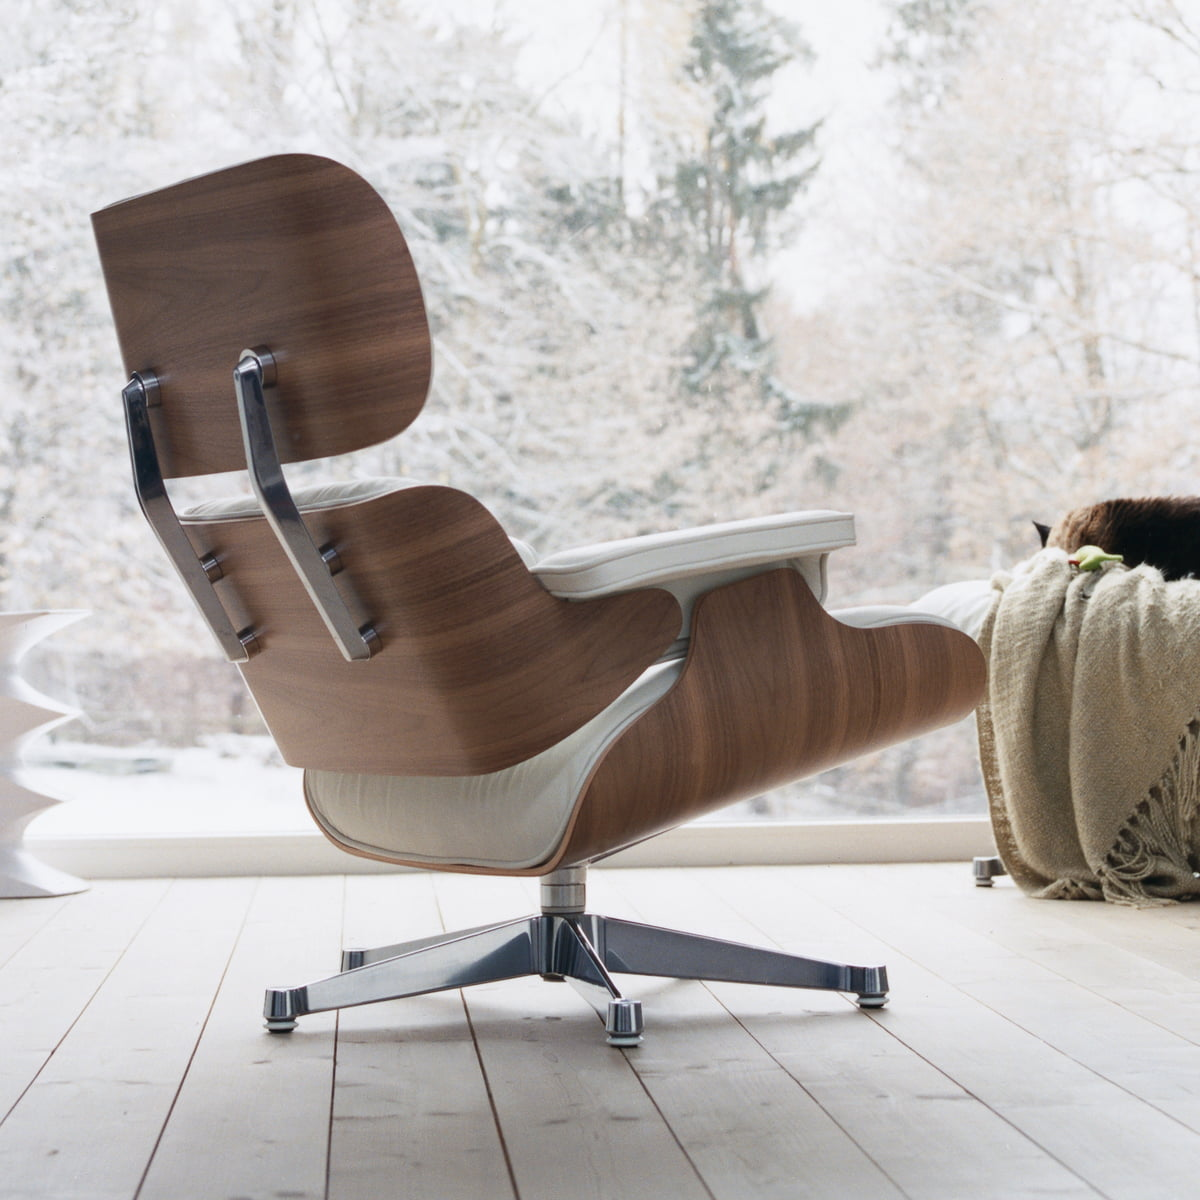 Vitra Chair With Premium Leather And Comfortable Padding